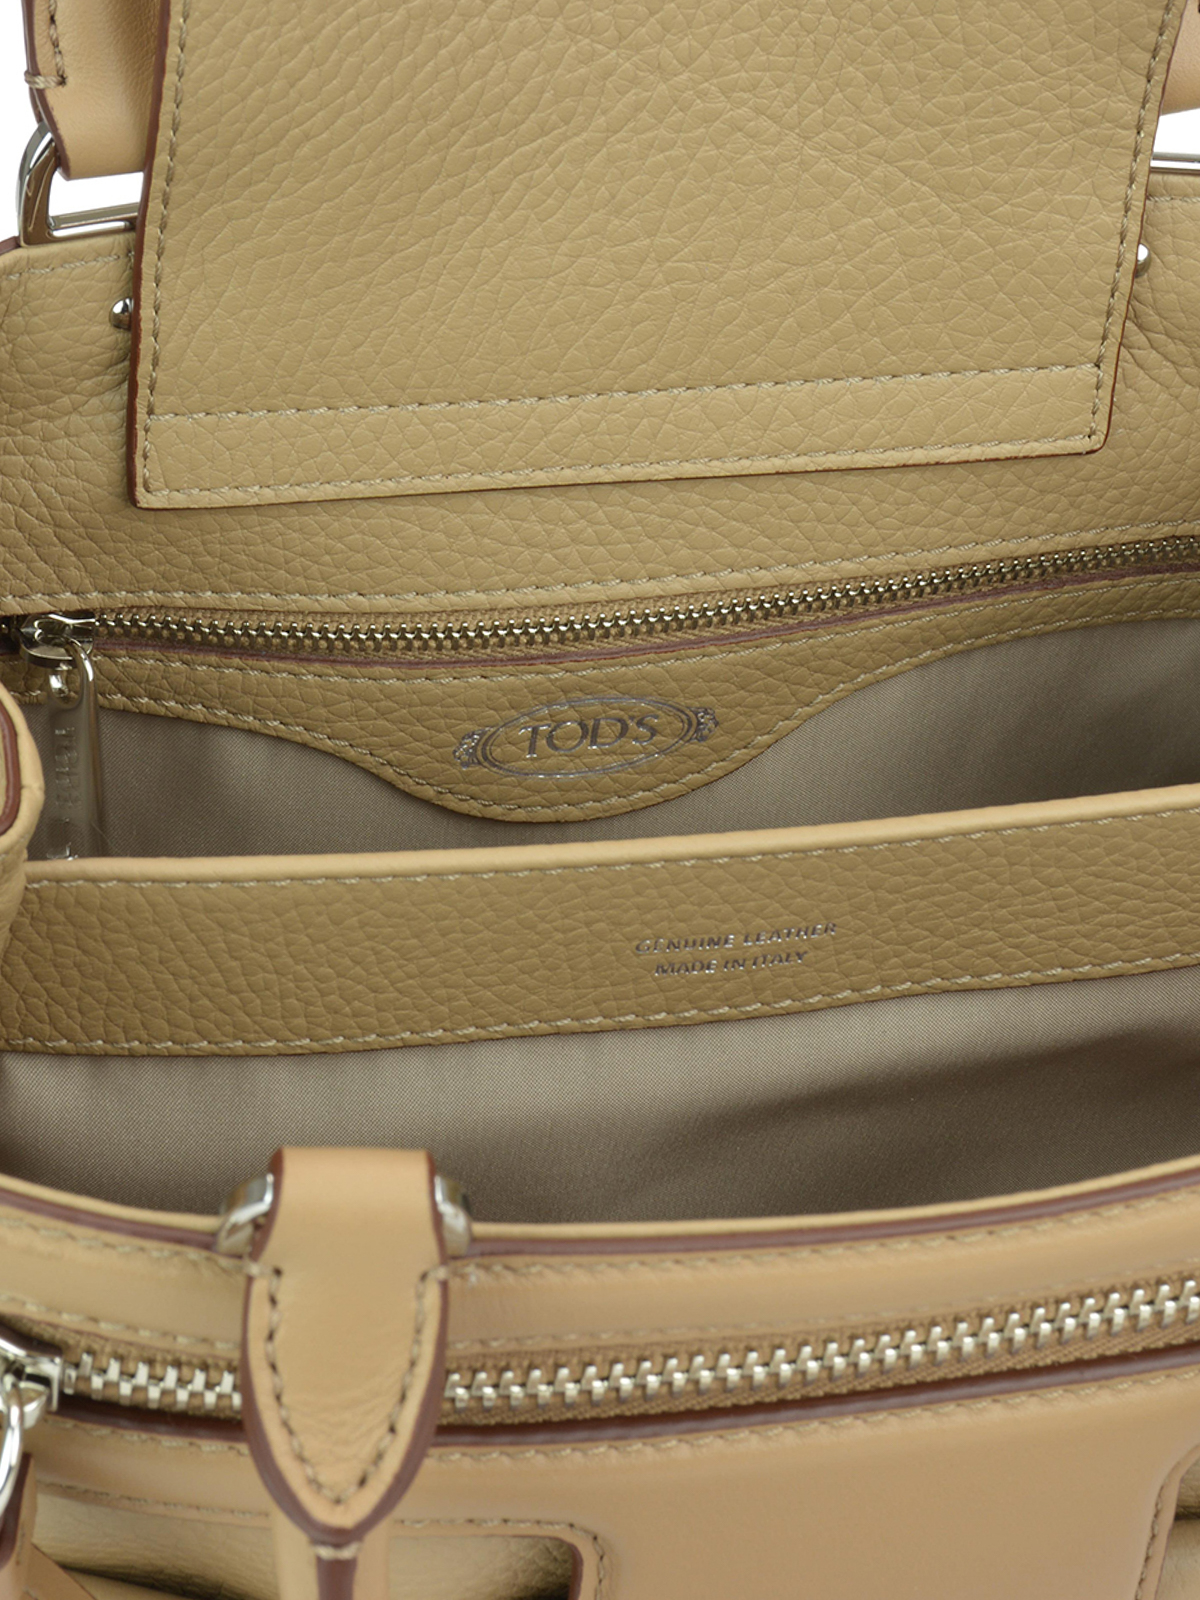 d5c2a8dd1c316 tods-buy-online-thea-beige-leather-small-handbag-00000144645f00s005.jpg